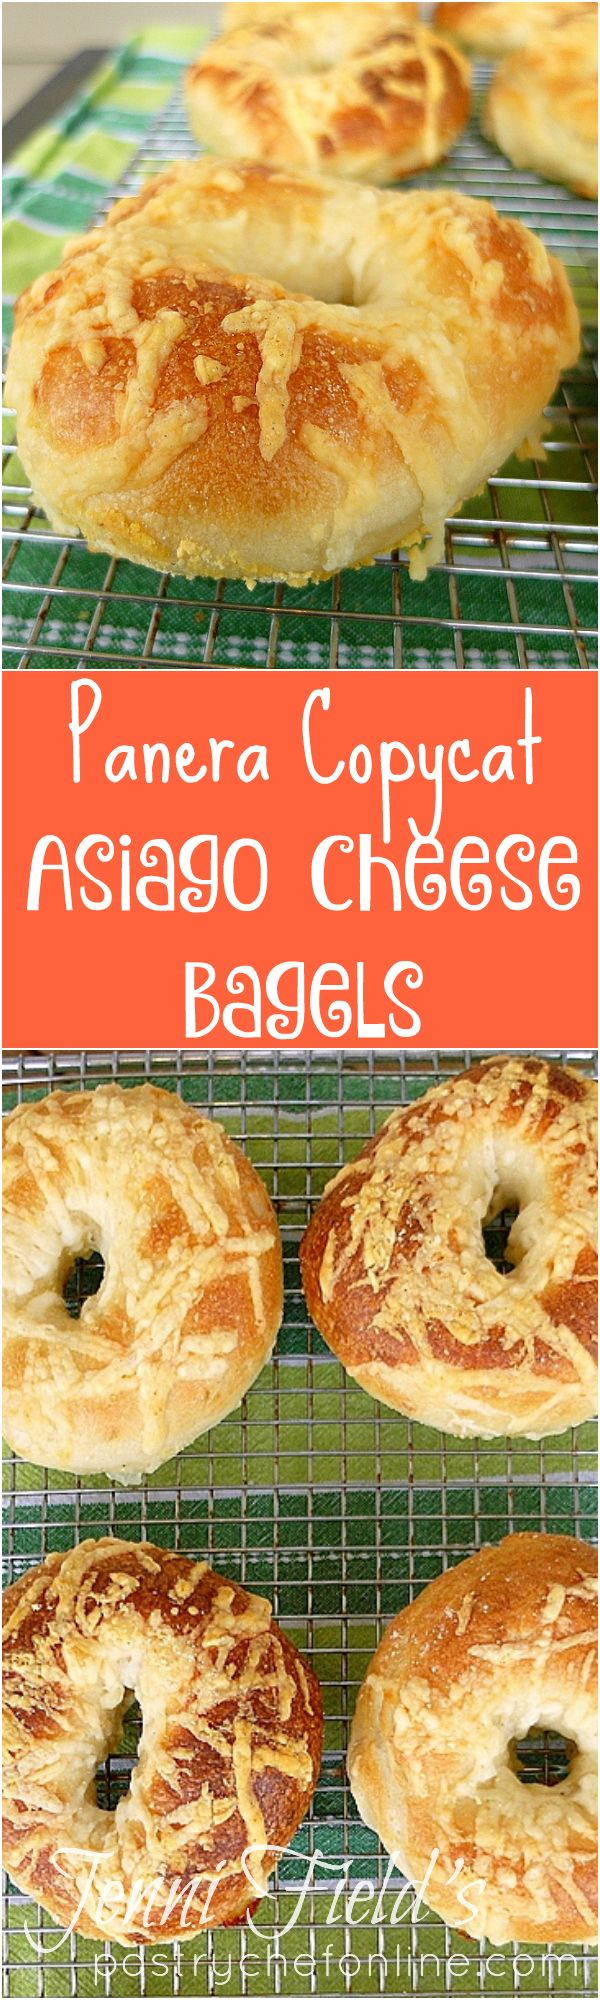 These Panera copycat Asiago Cheese Bagels will satisfy the bagel lover in you. And the cheese lover! If you have always wanted to make homemade bagels. this asiago cheese bagel recipe is a great place to start! | pastrychefonline.com